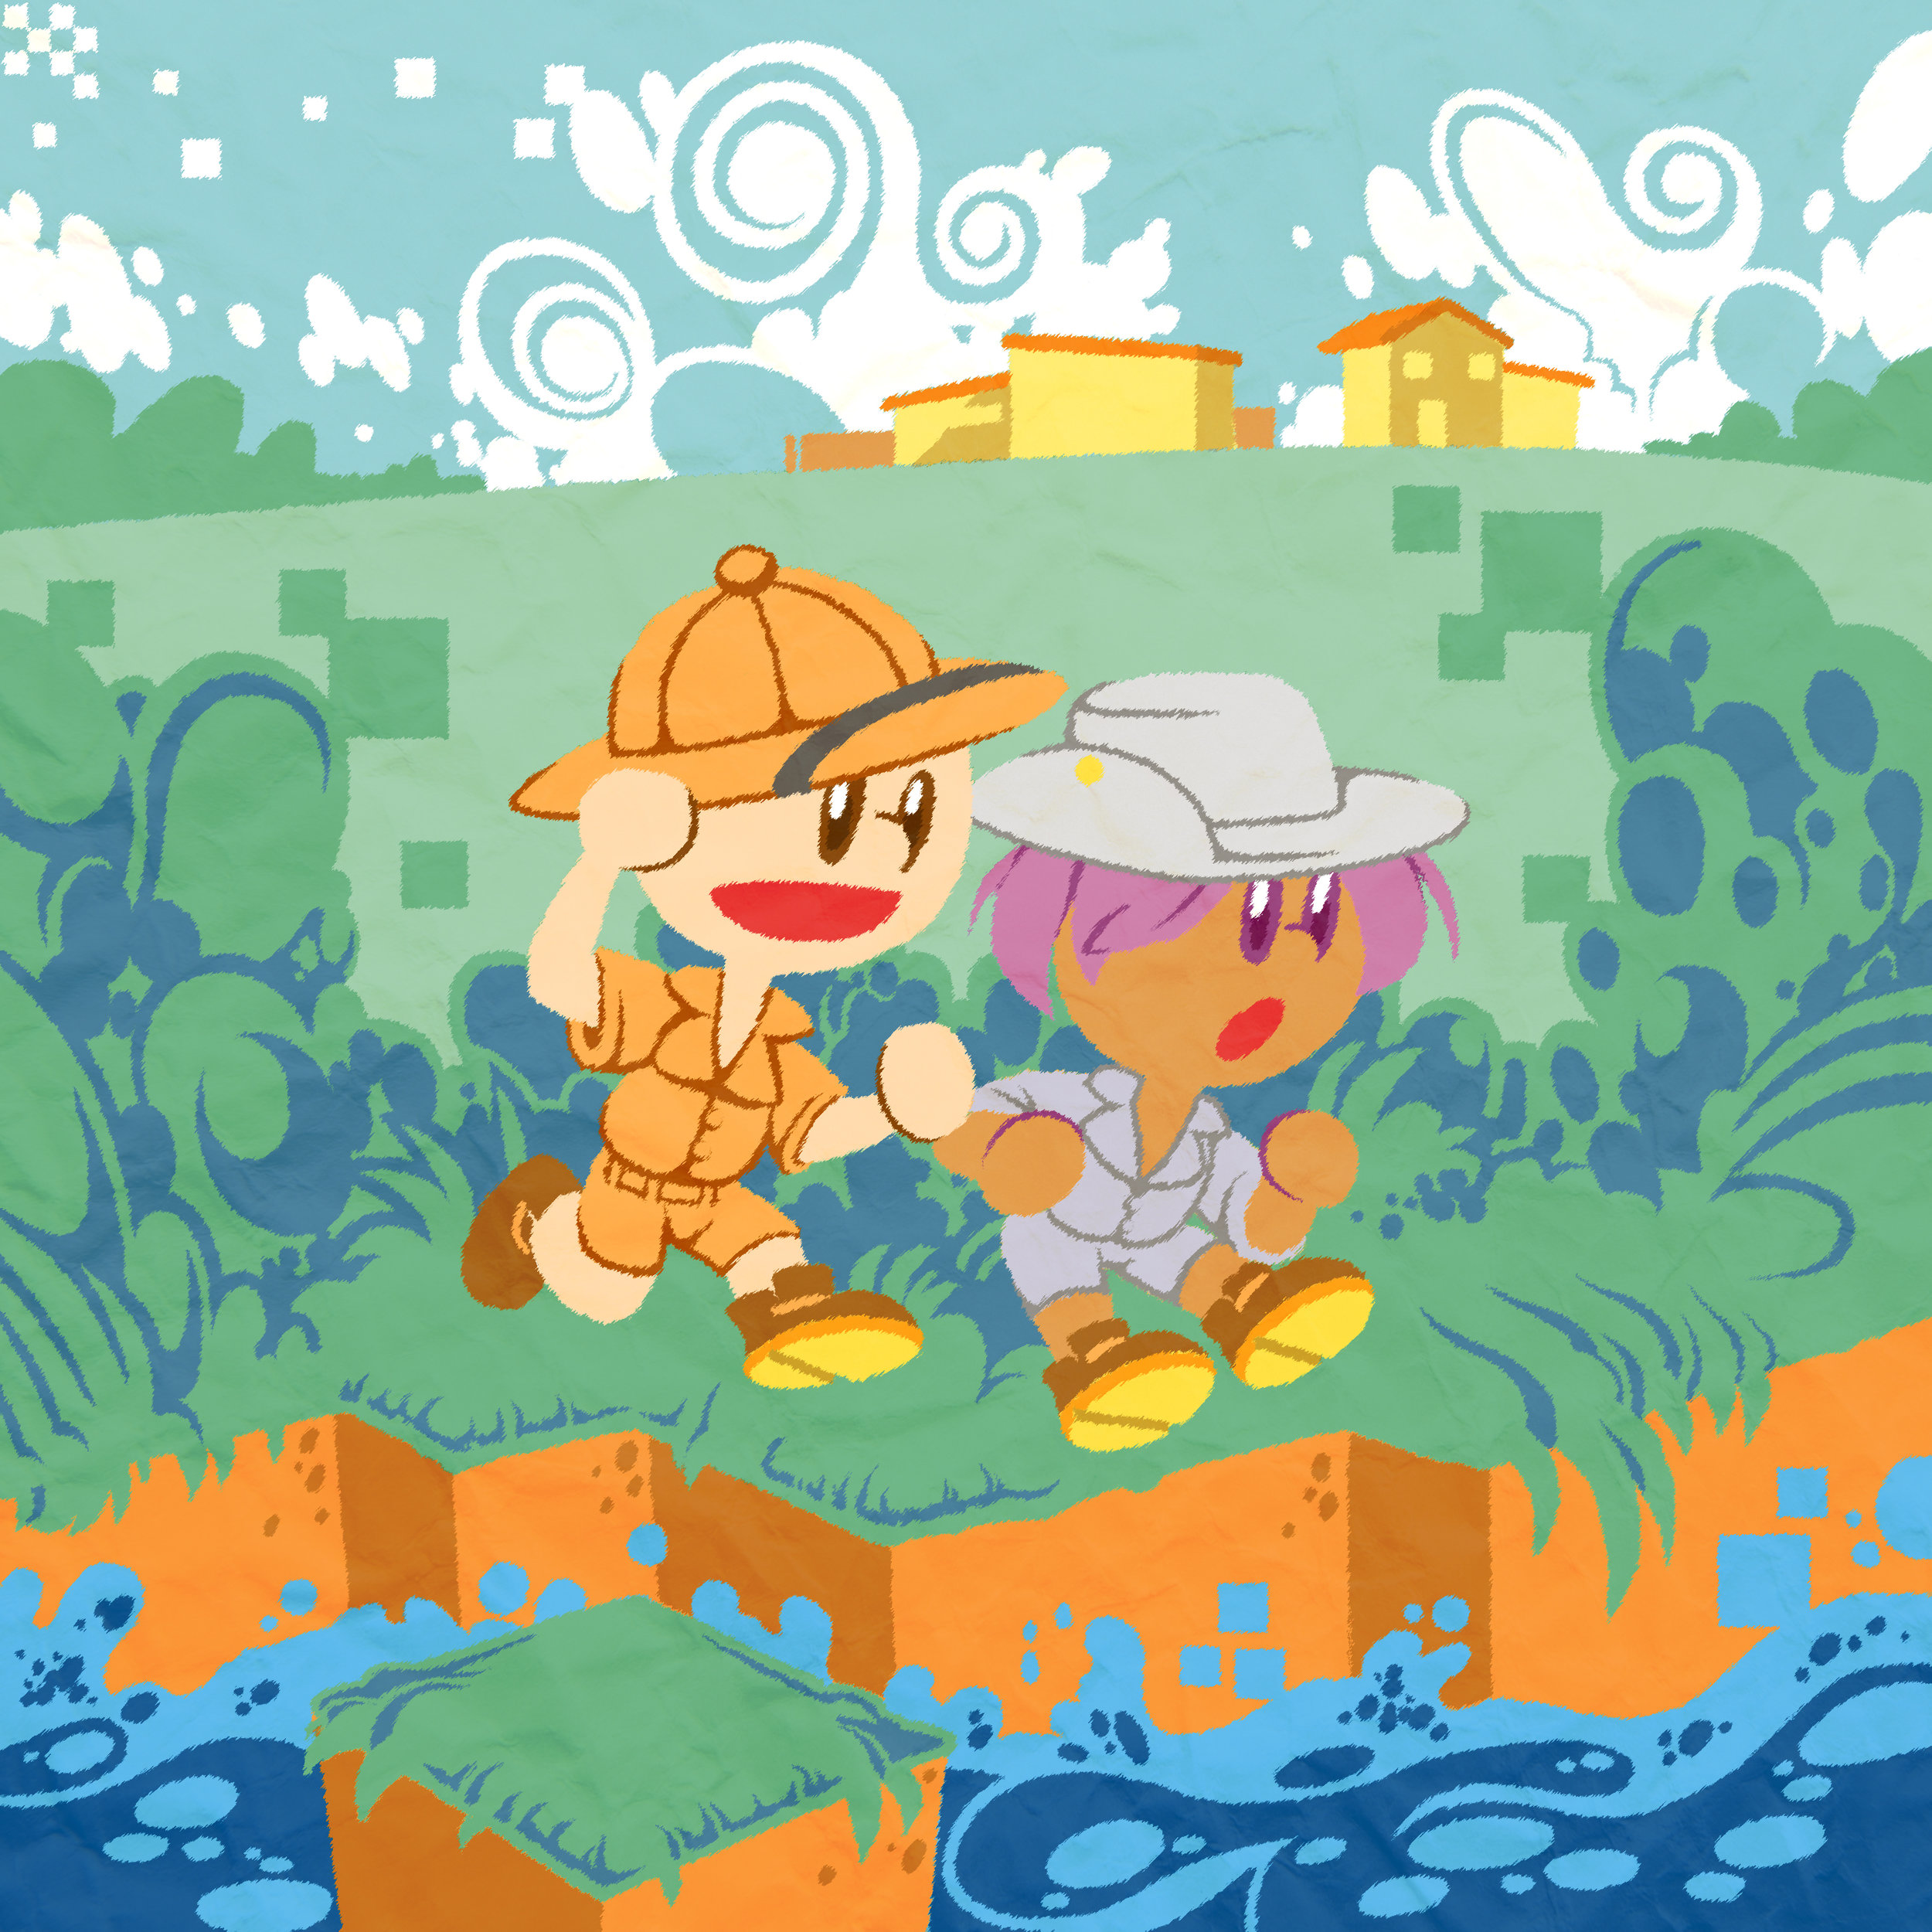 A is for Adventure. Andy and Alice are ready for adventure!